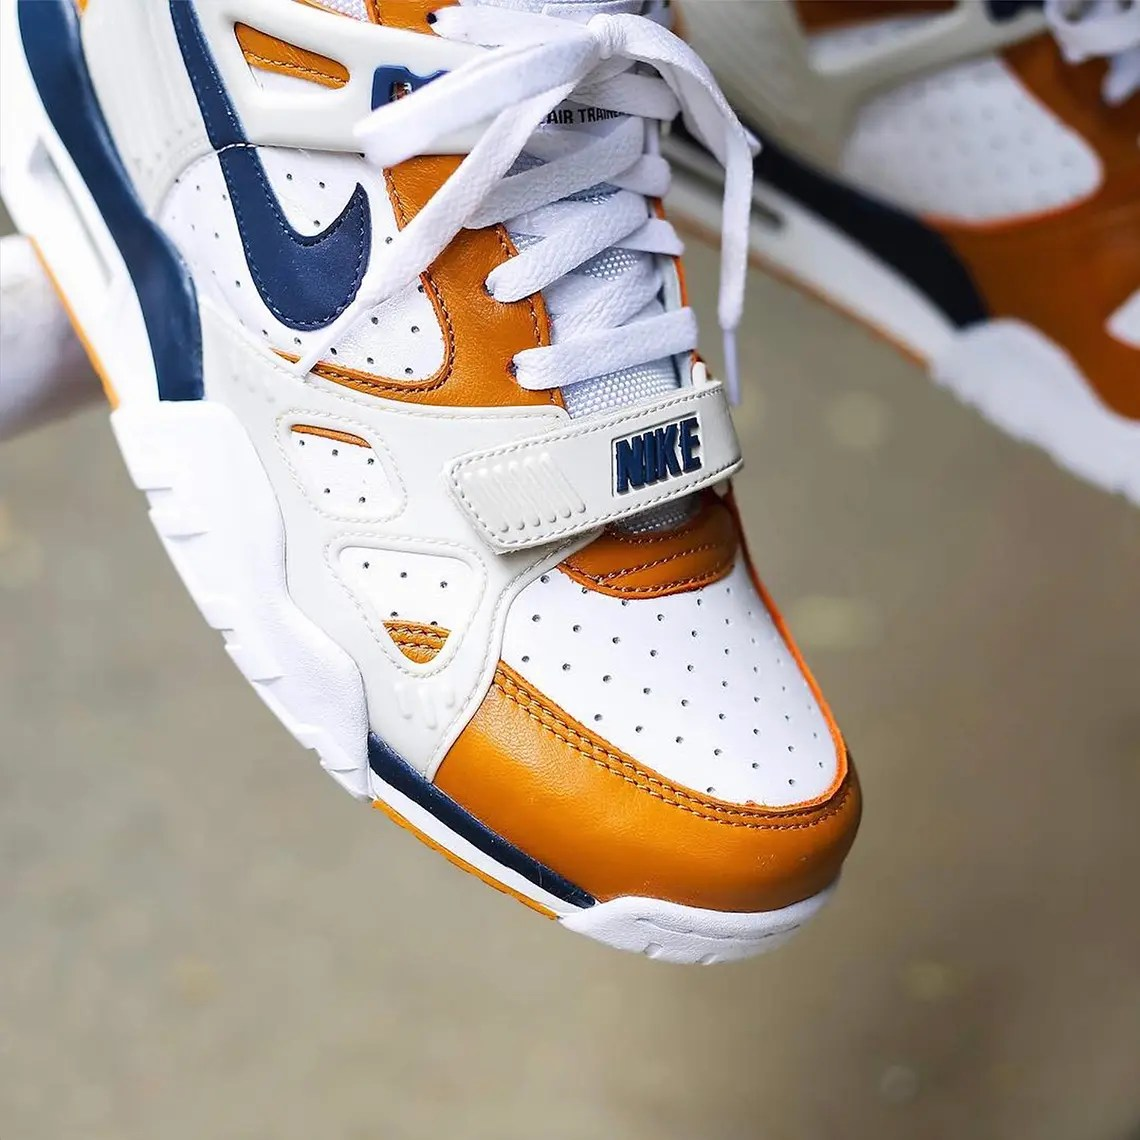 nike-air-trainer-3-medicine-ball-cj1436-100-store-list-2